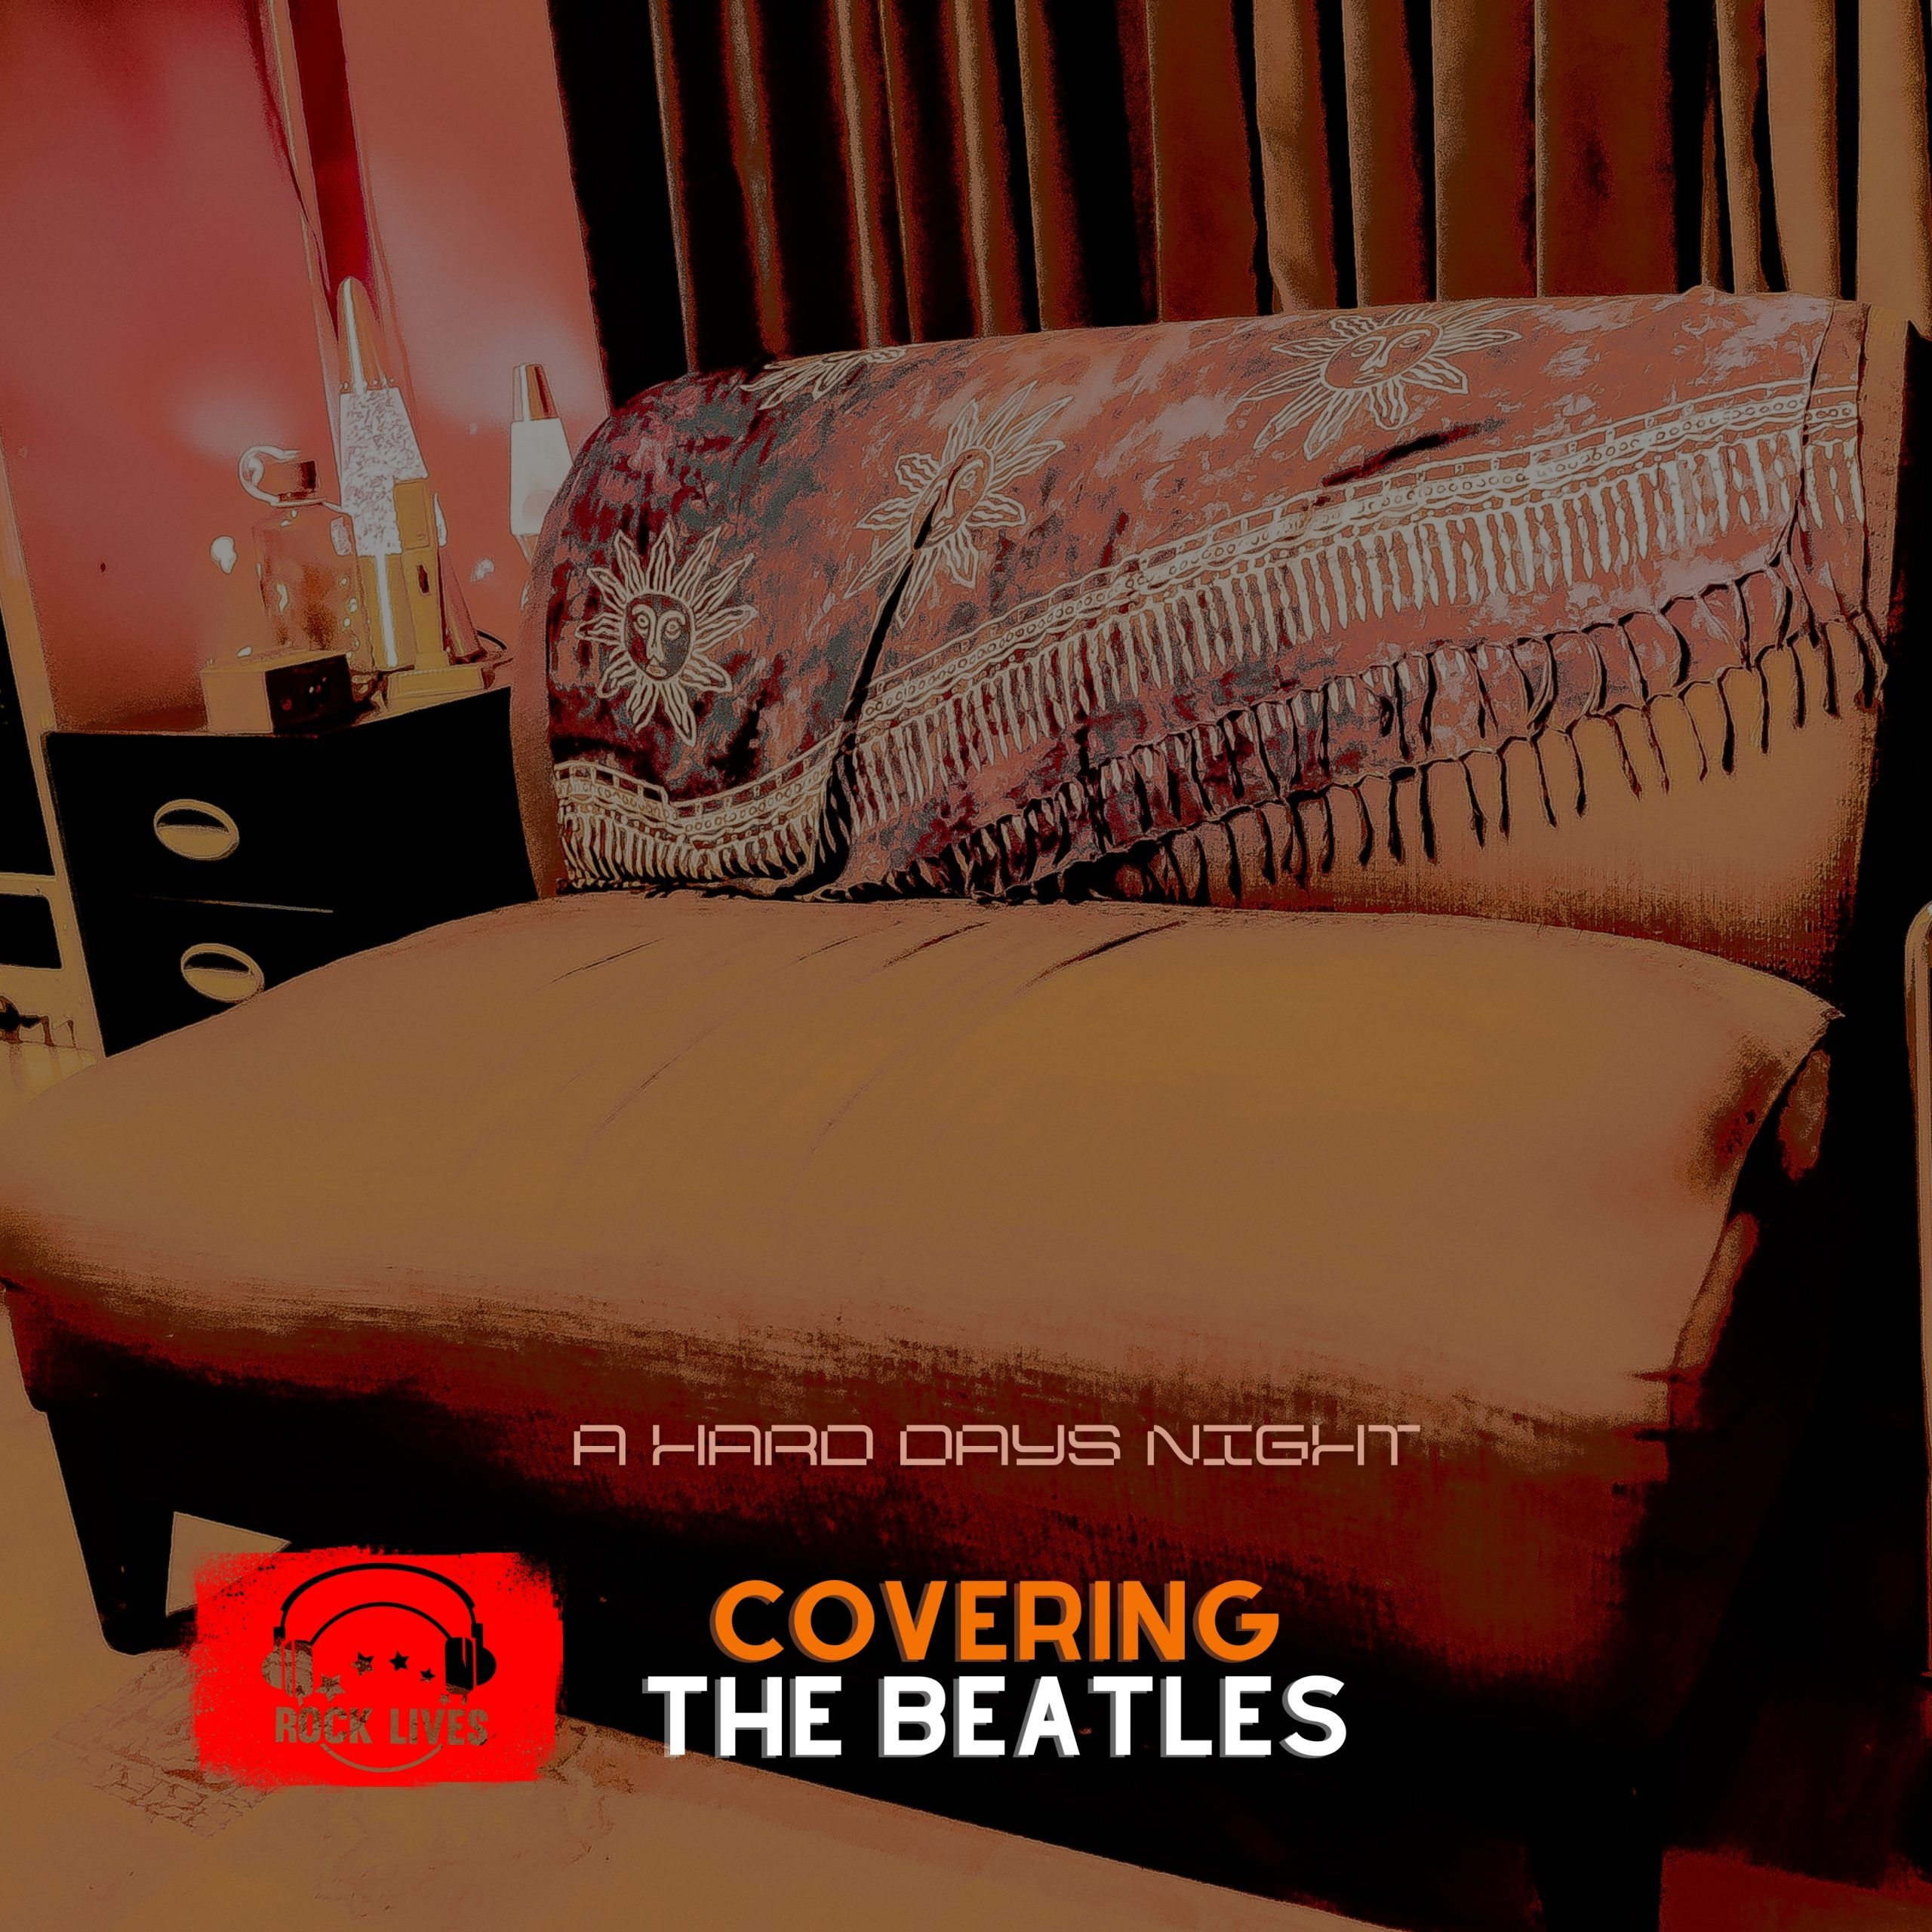 2) A Hard Days Night – Start With A Guitar Hook – (Covering The Beatles – 14 Song Series)